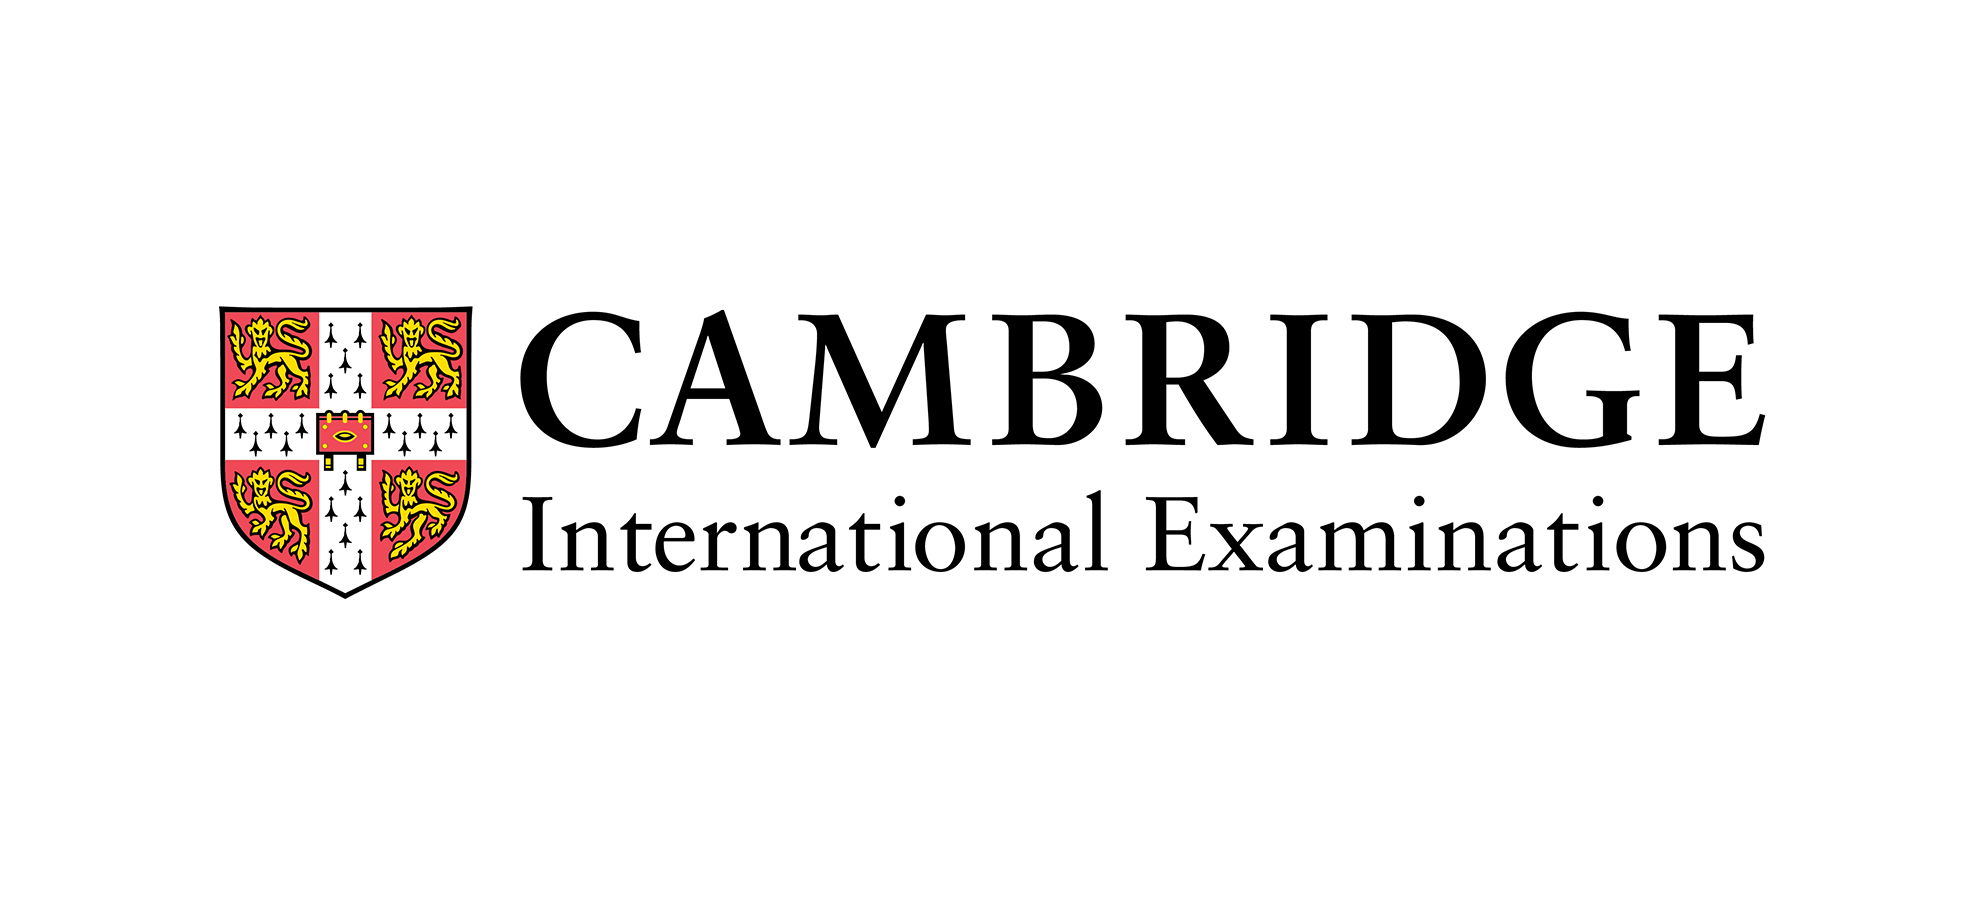 Cambridghe International Examinations.jpg